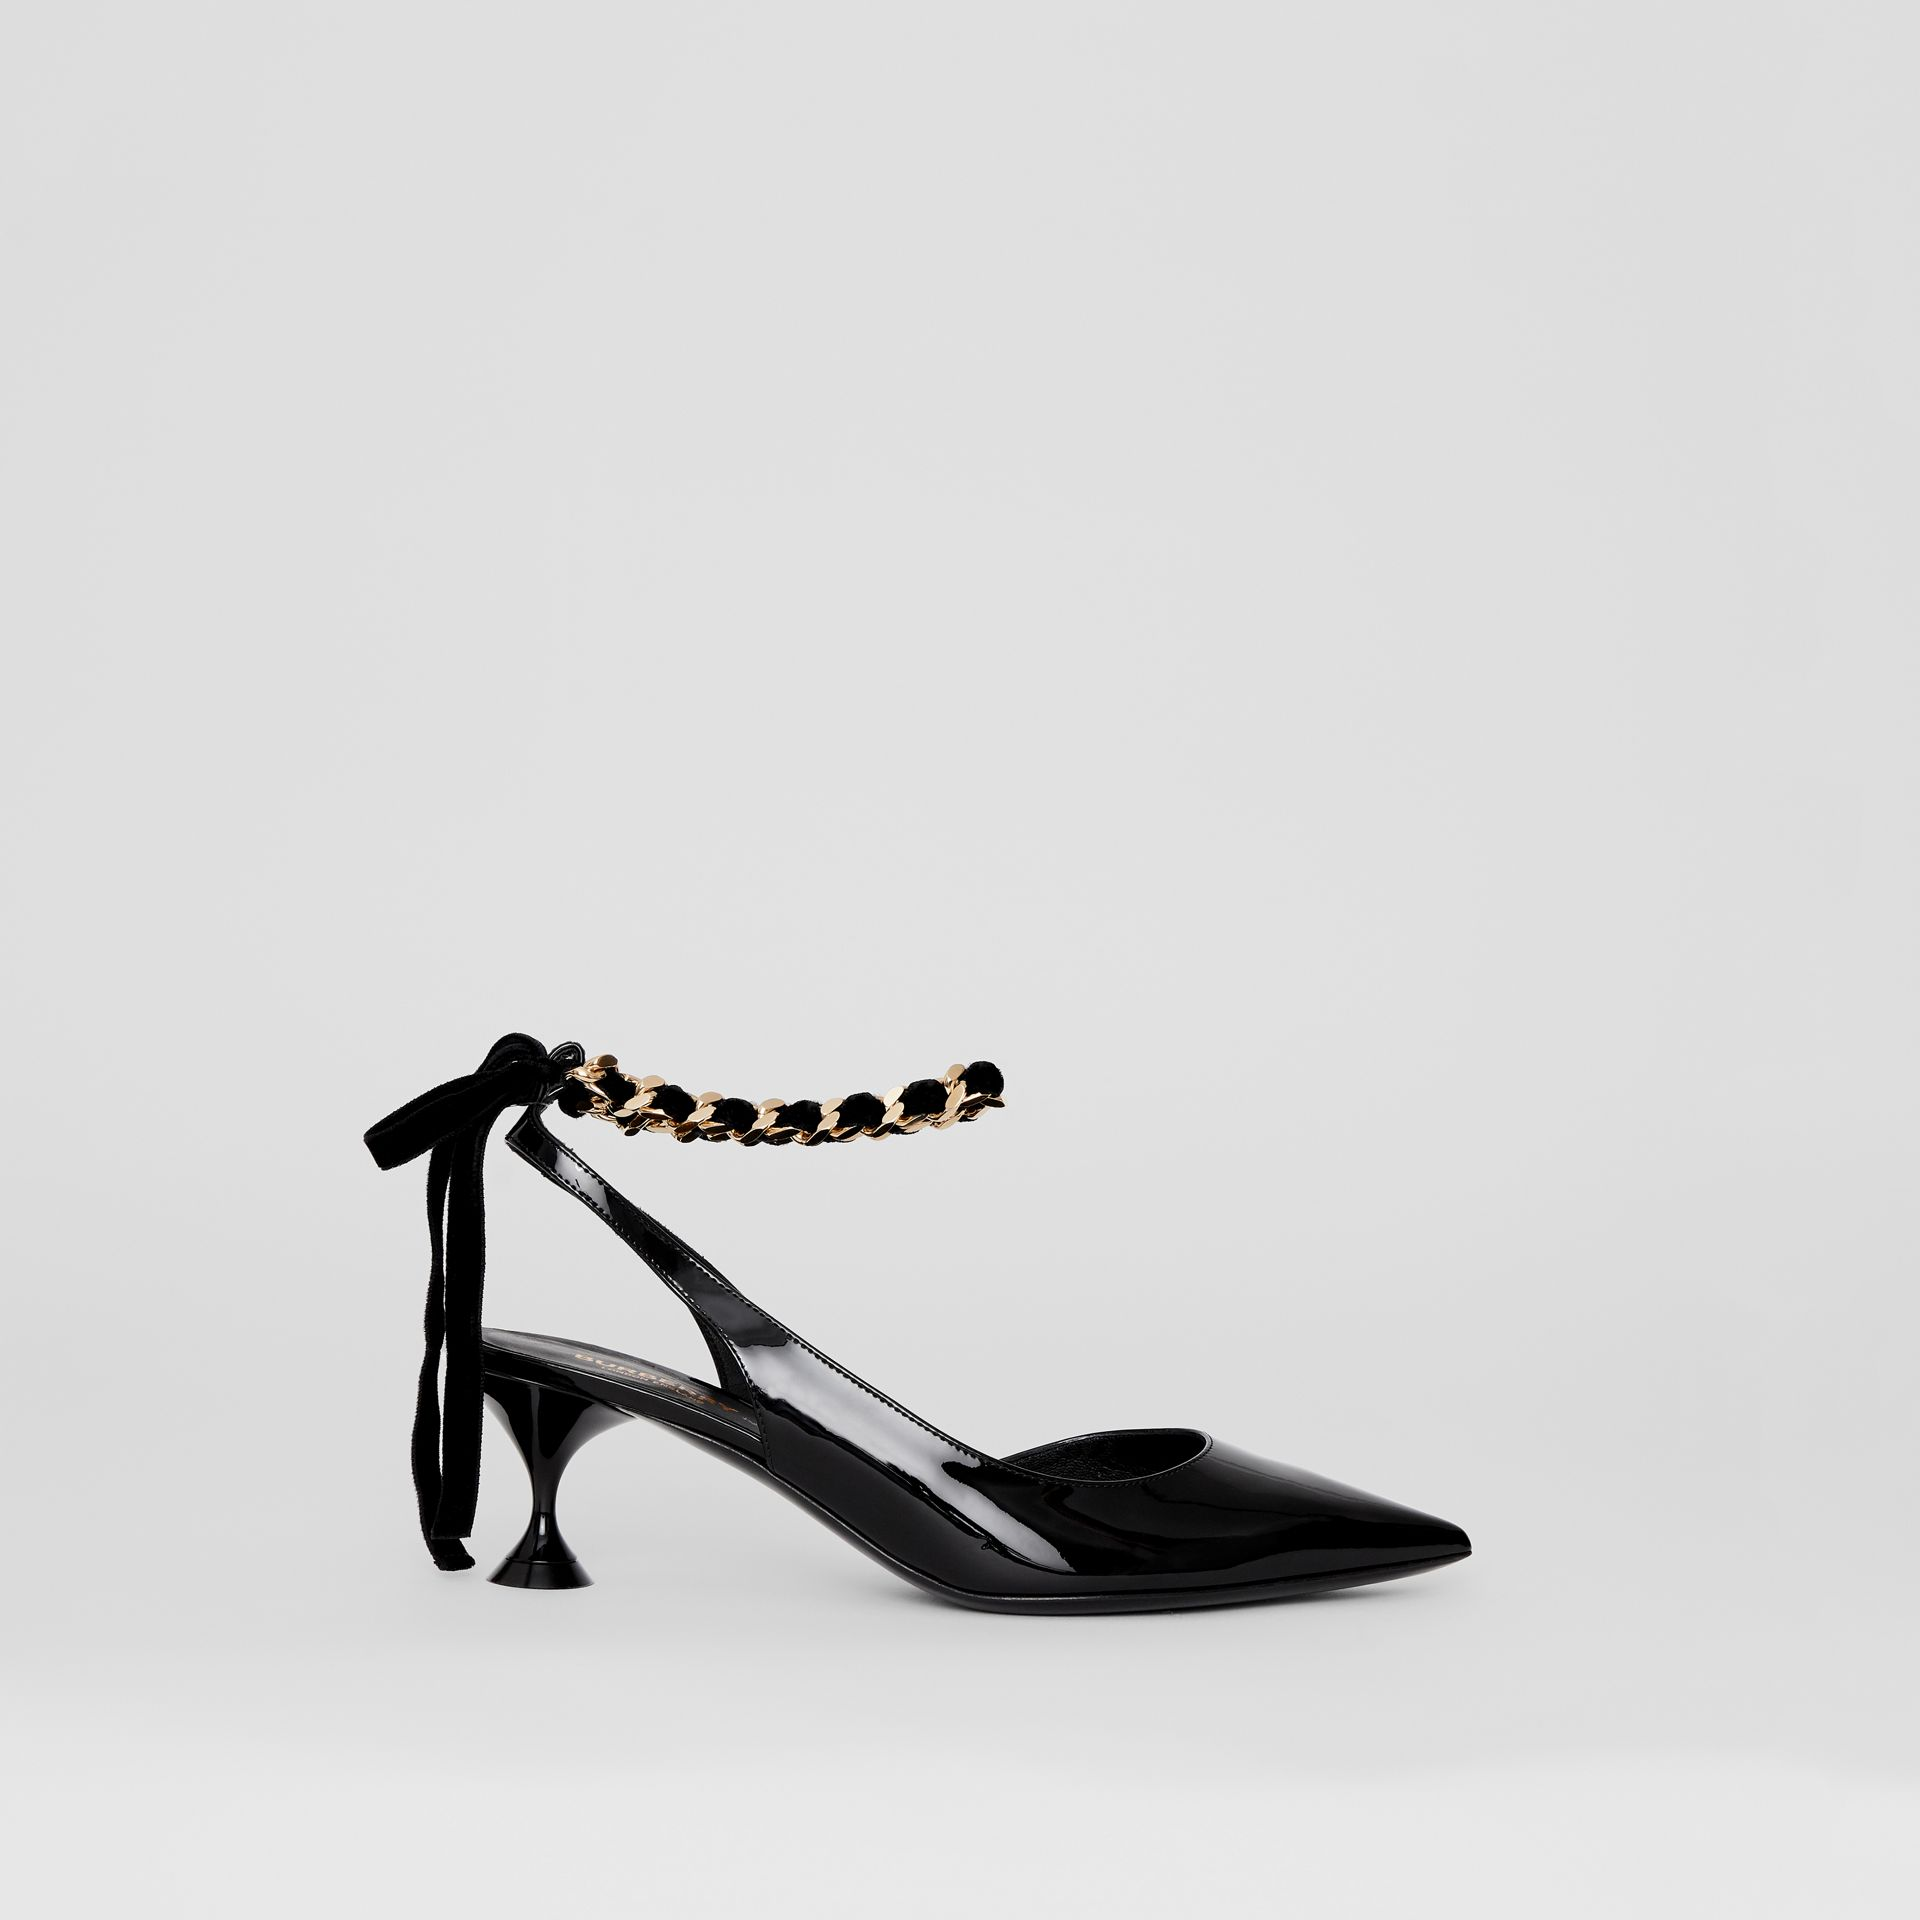 Chain Detail Leather Slingback Pumps in Black - Women | Burberry Singapore - gallery image 5